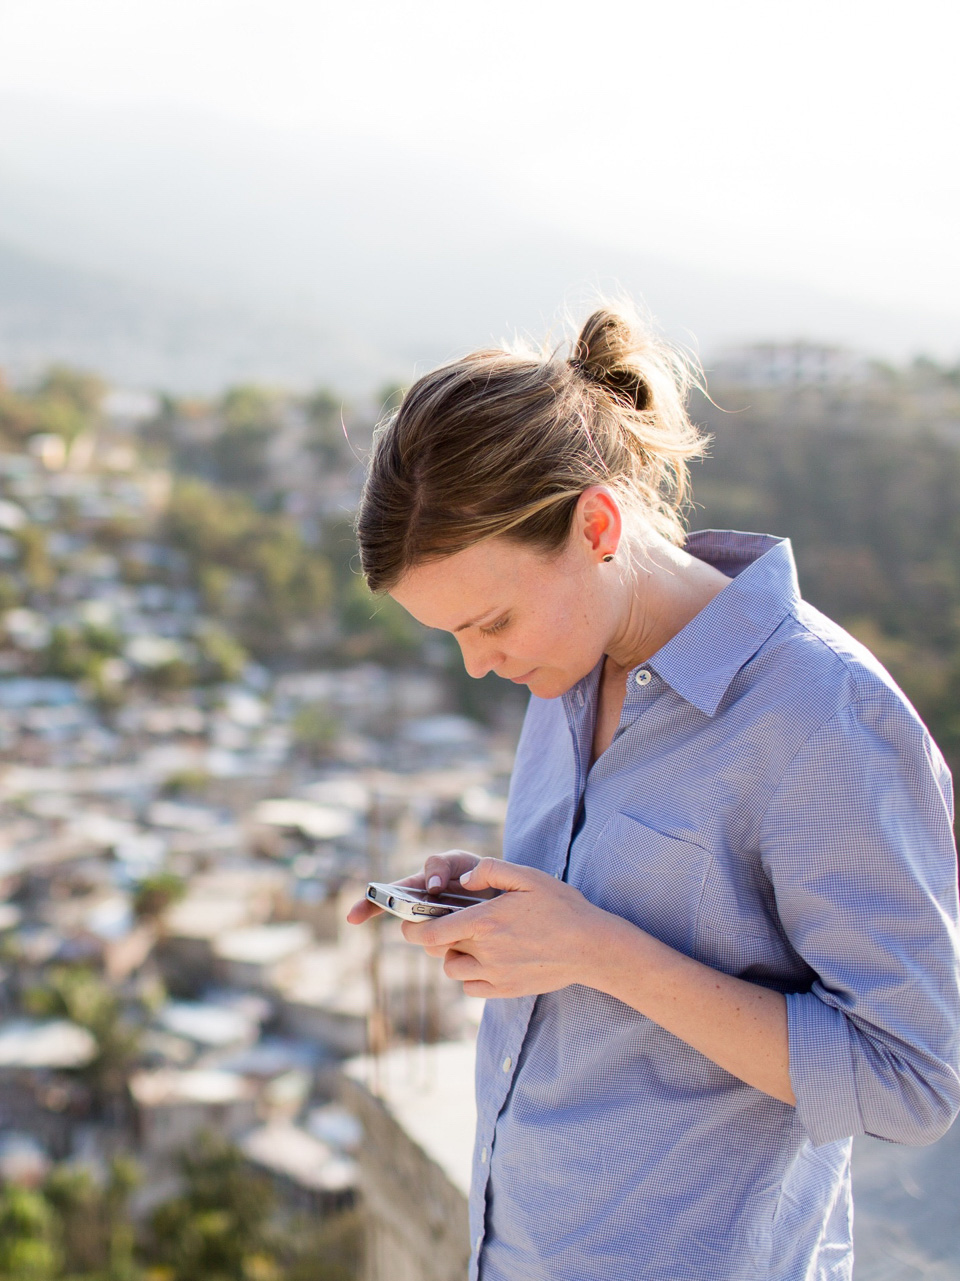 Photo of Becky Straw looking down and texting on a cellphone.